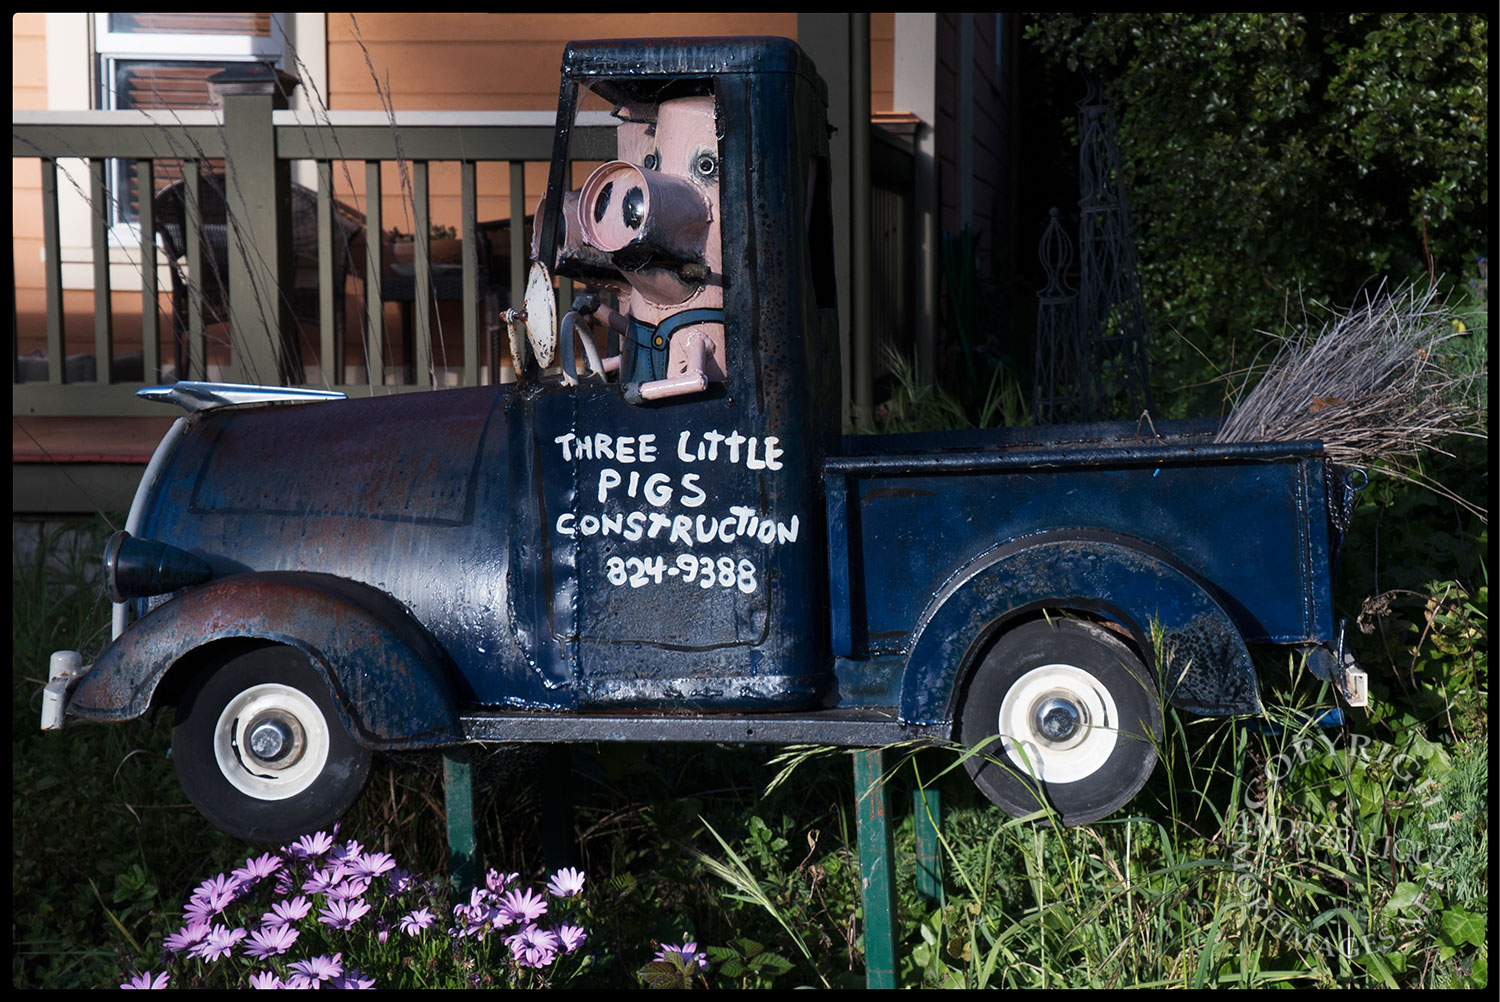 Sculpture by Patrick Amiot, Florence Avenue, Sebastapol, CA 2015-04-10